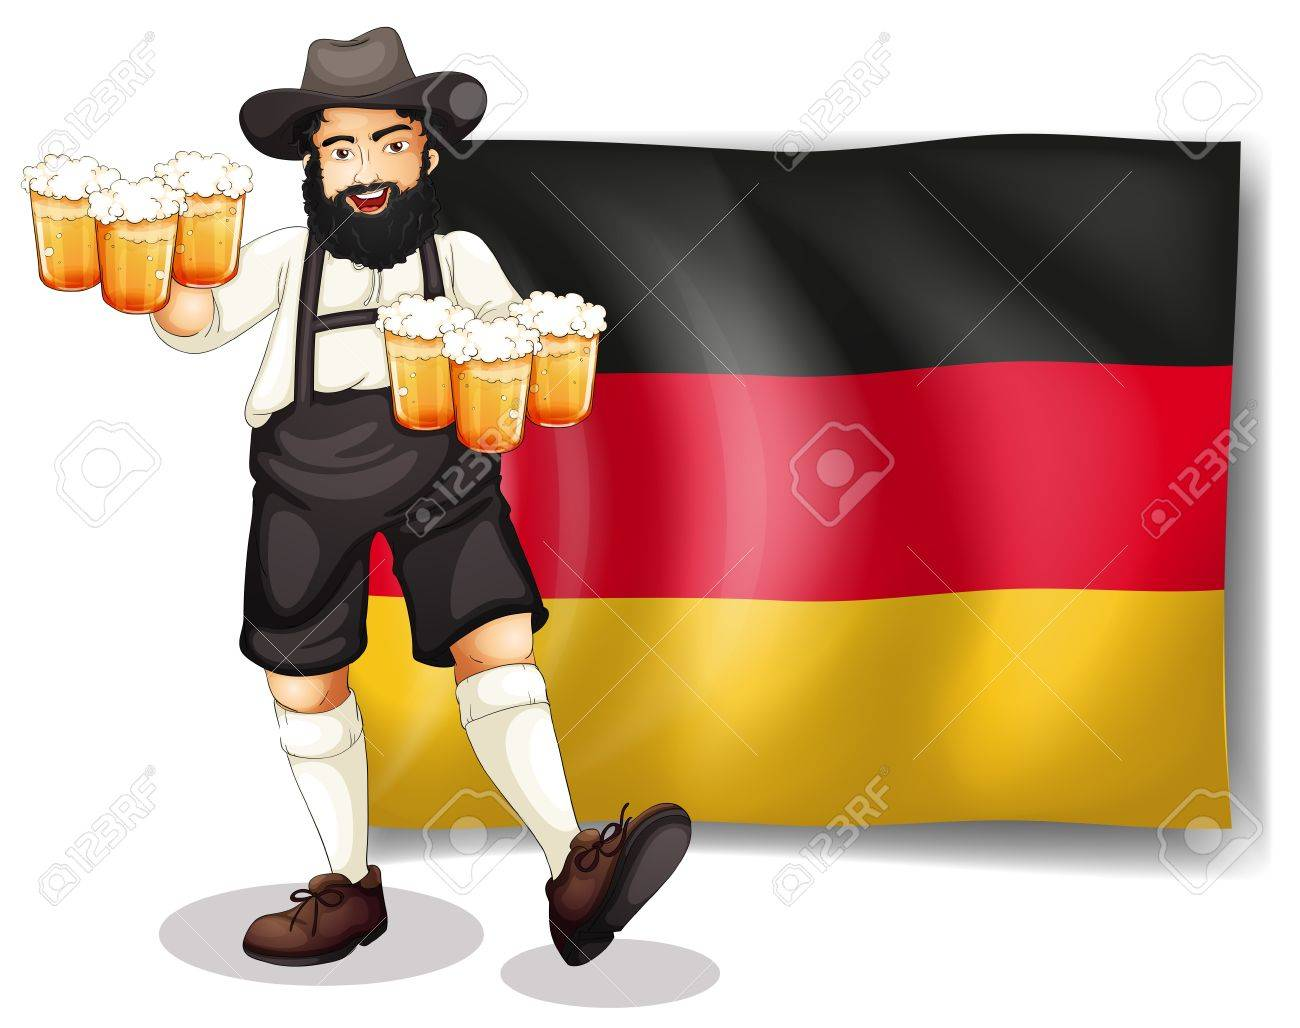 Illustration of a man holding a beer in front of a flag on a white background Stock Vector - 18210319